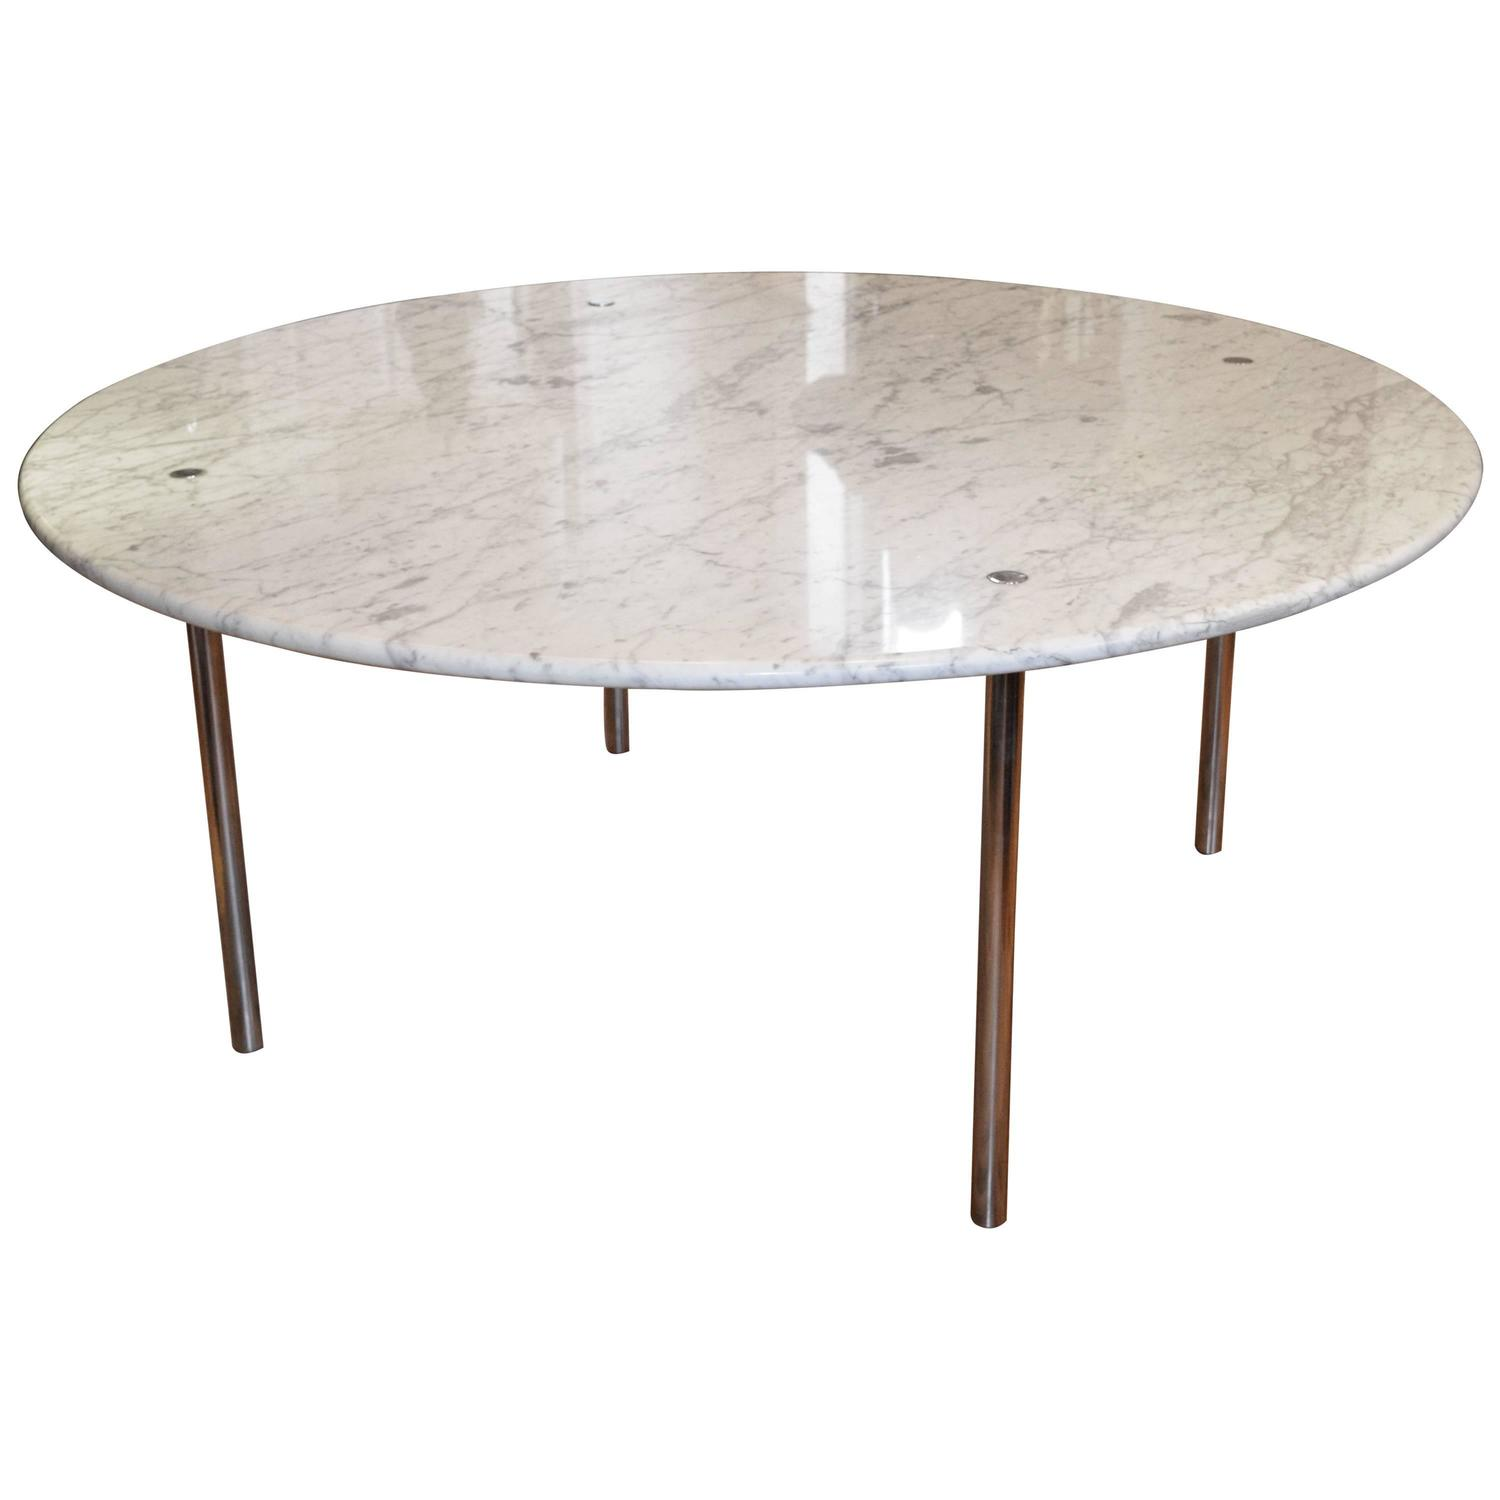 Monumental Round Marble Dining Table by Katavolos Littell